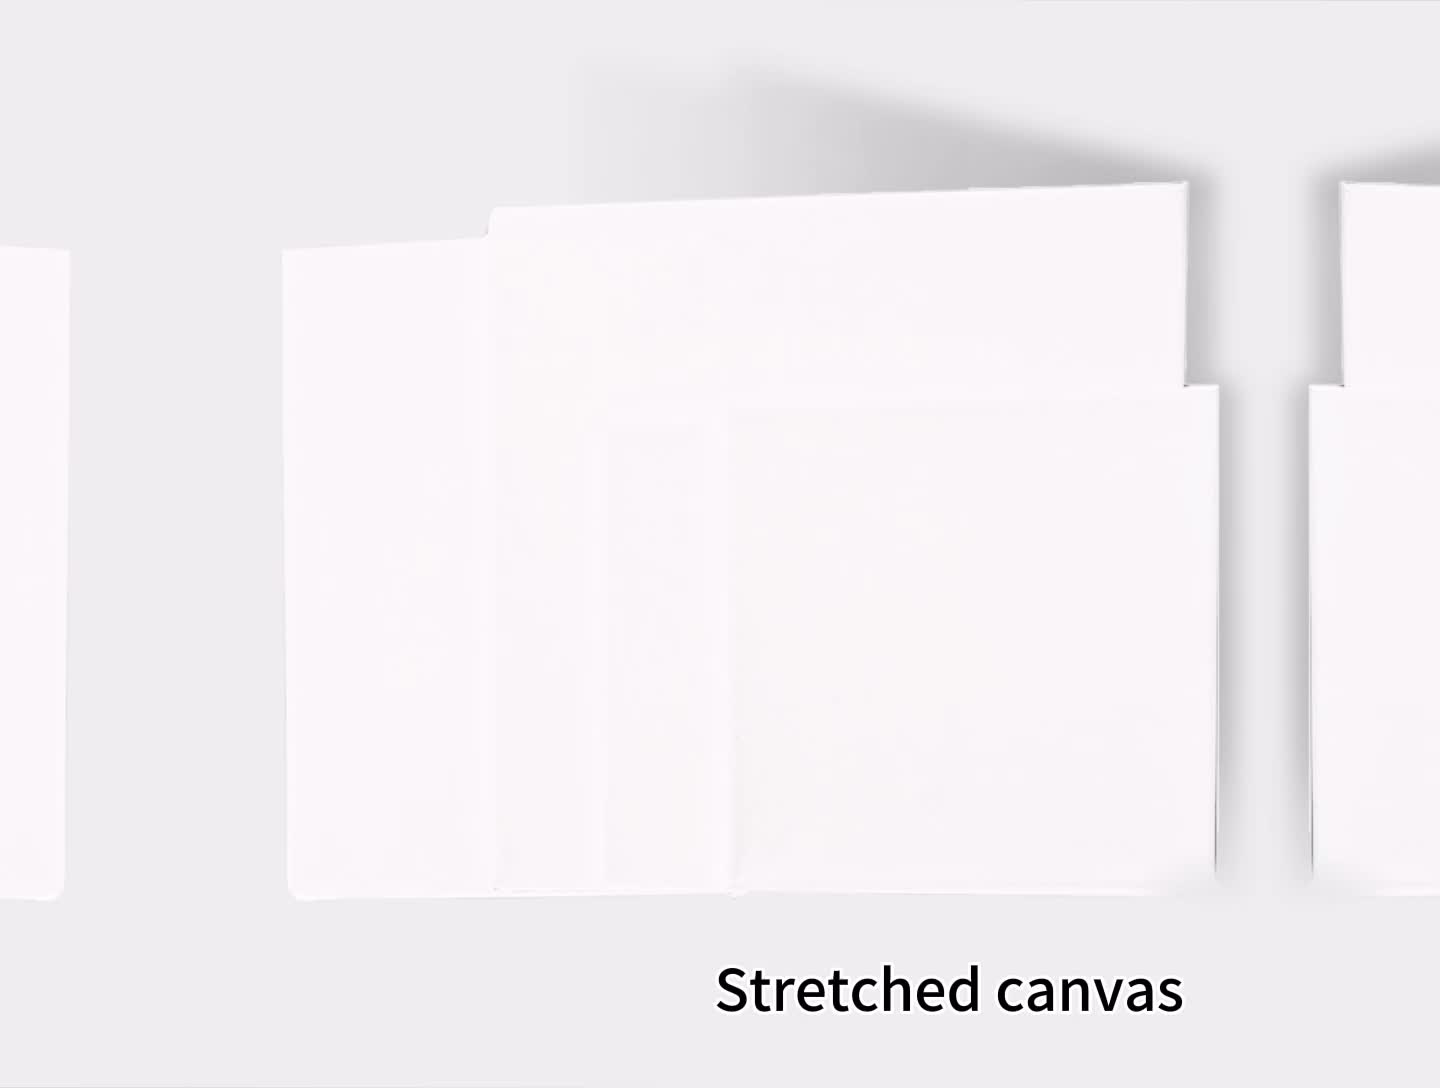 wholesale large cotton stretched painting artist primed canvas frames blank for acrylics, blank canvas for artist stretched